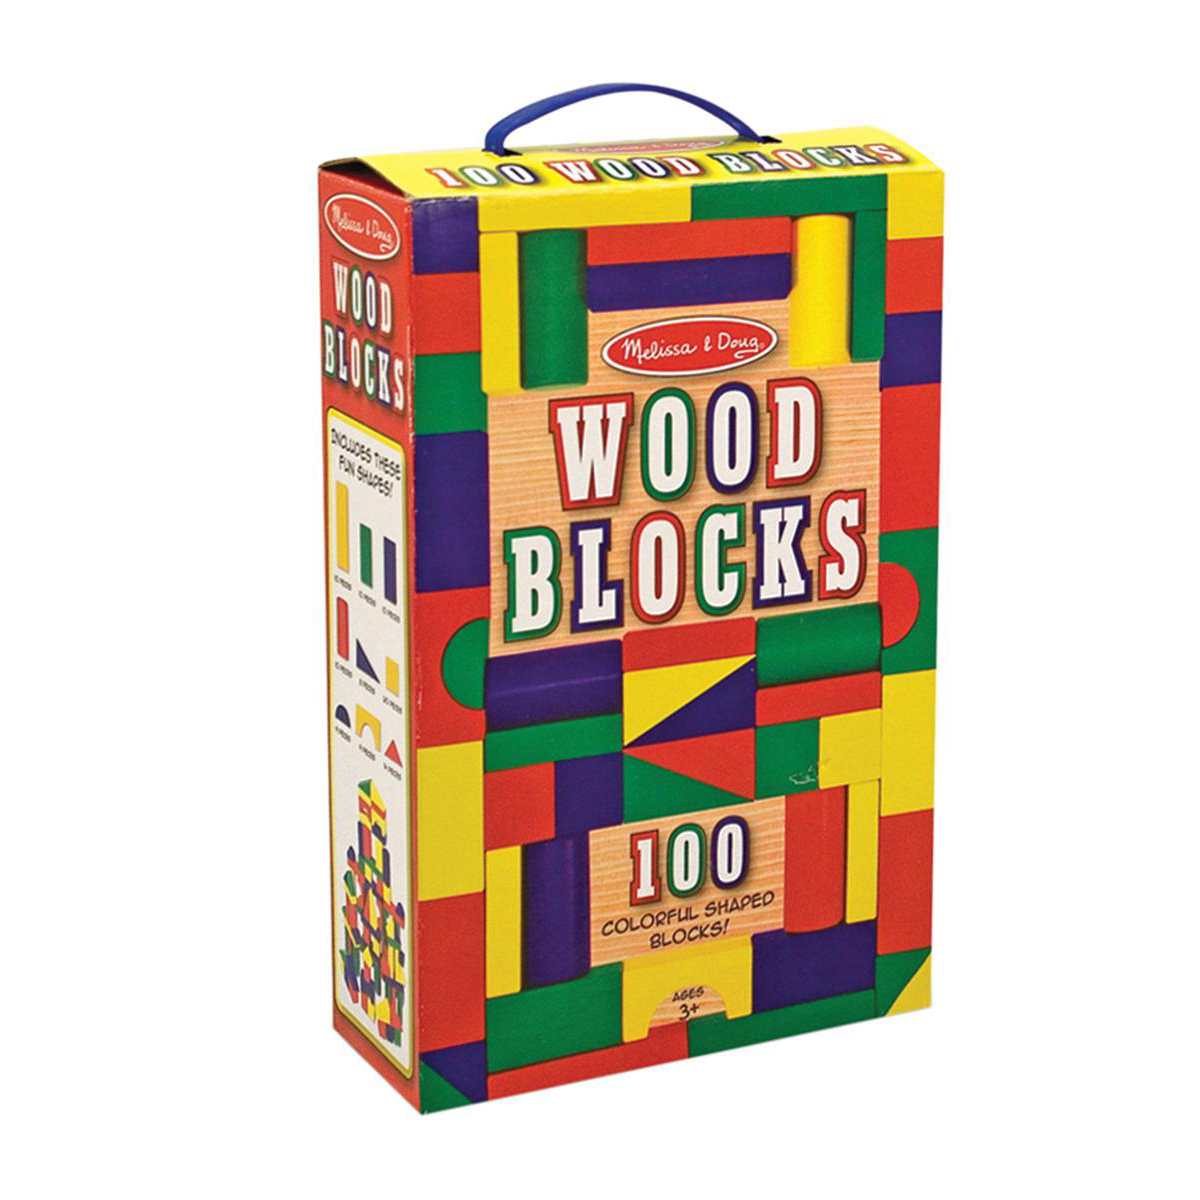 Coloured Wood Blocks